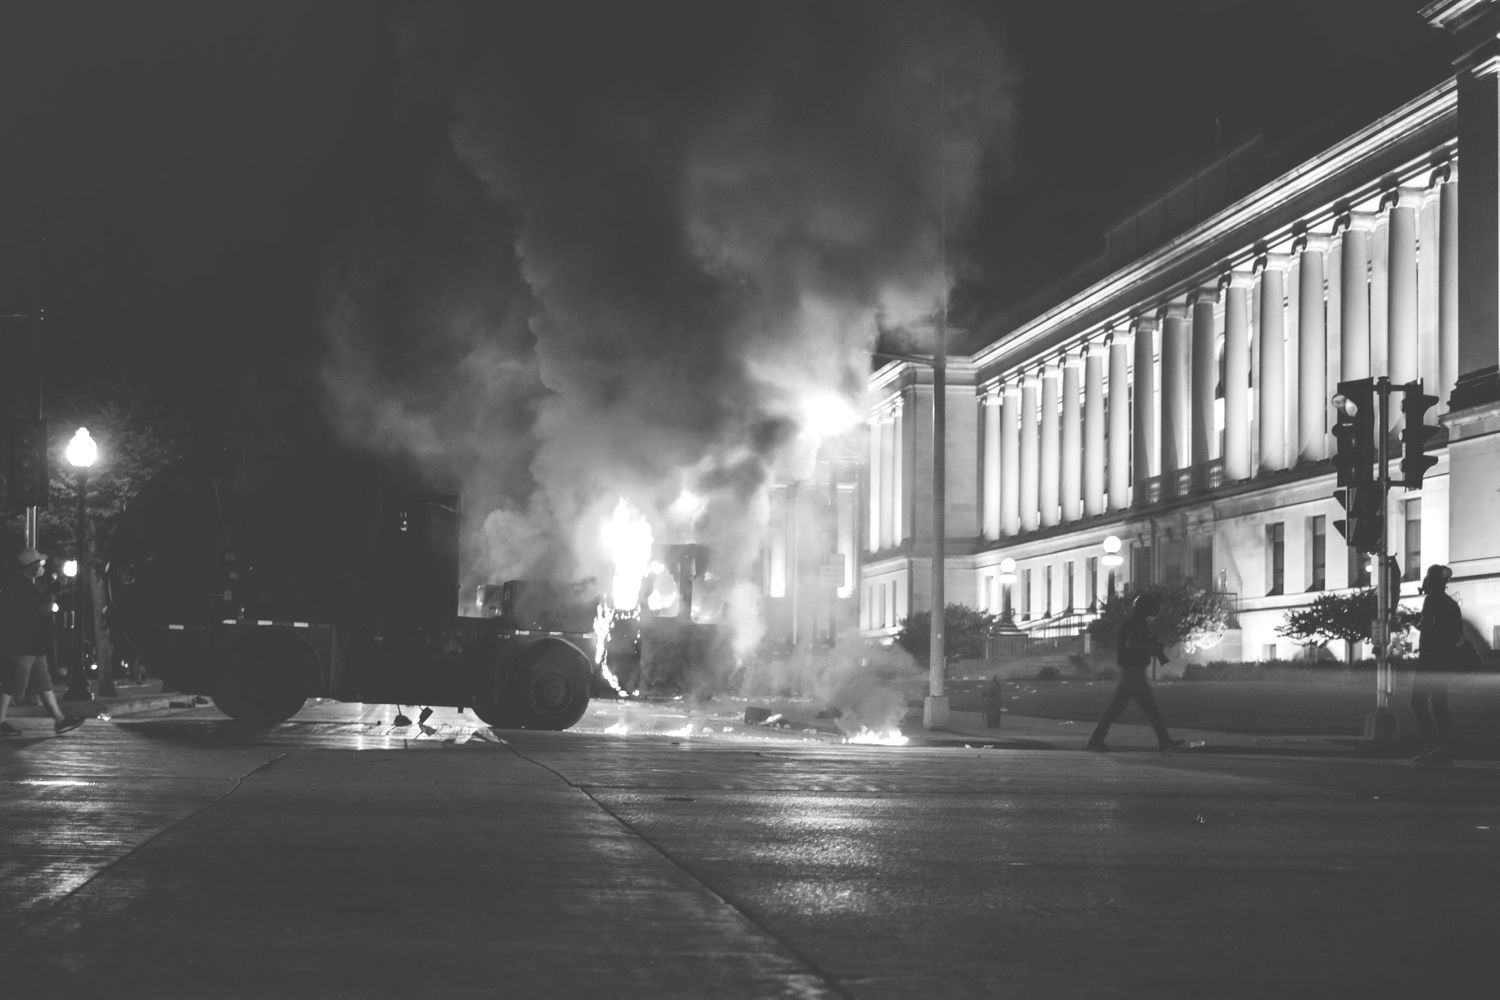 A garbage truck burns near the Kenosha County Courthouse.